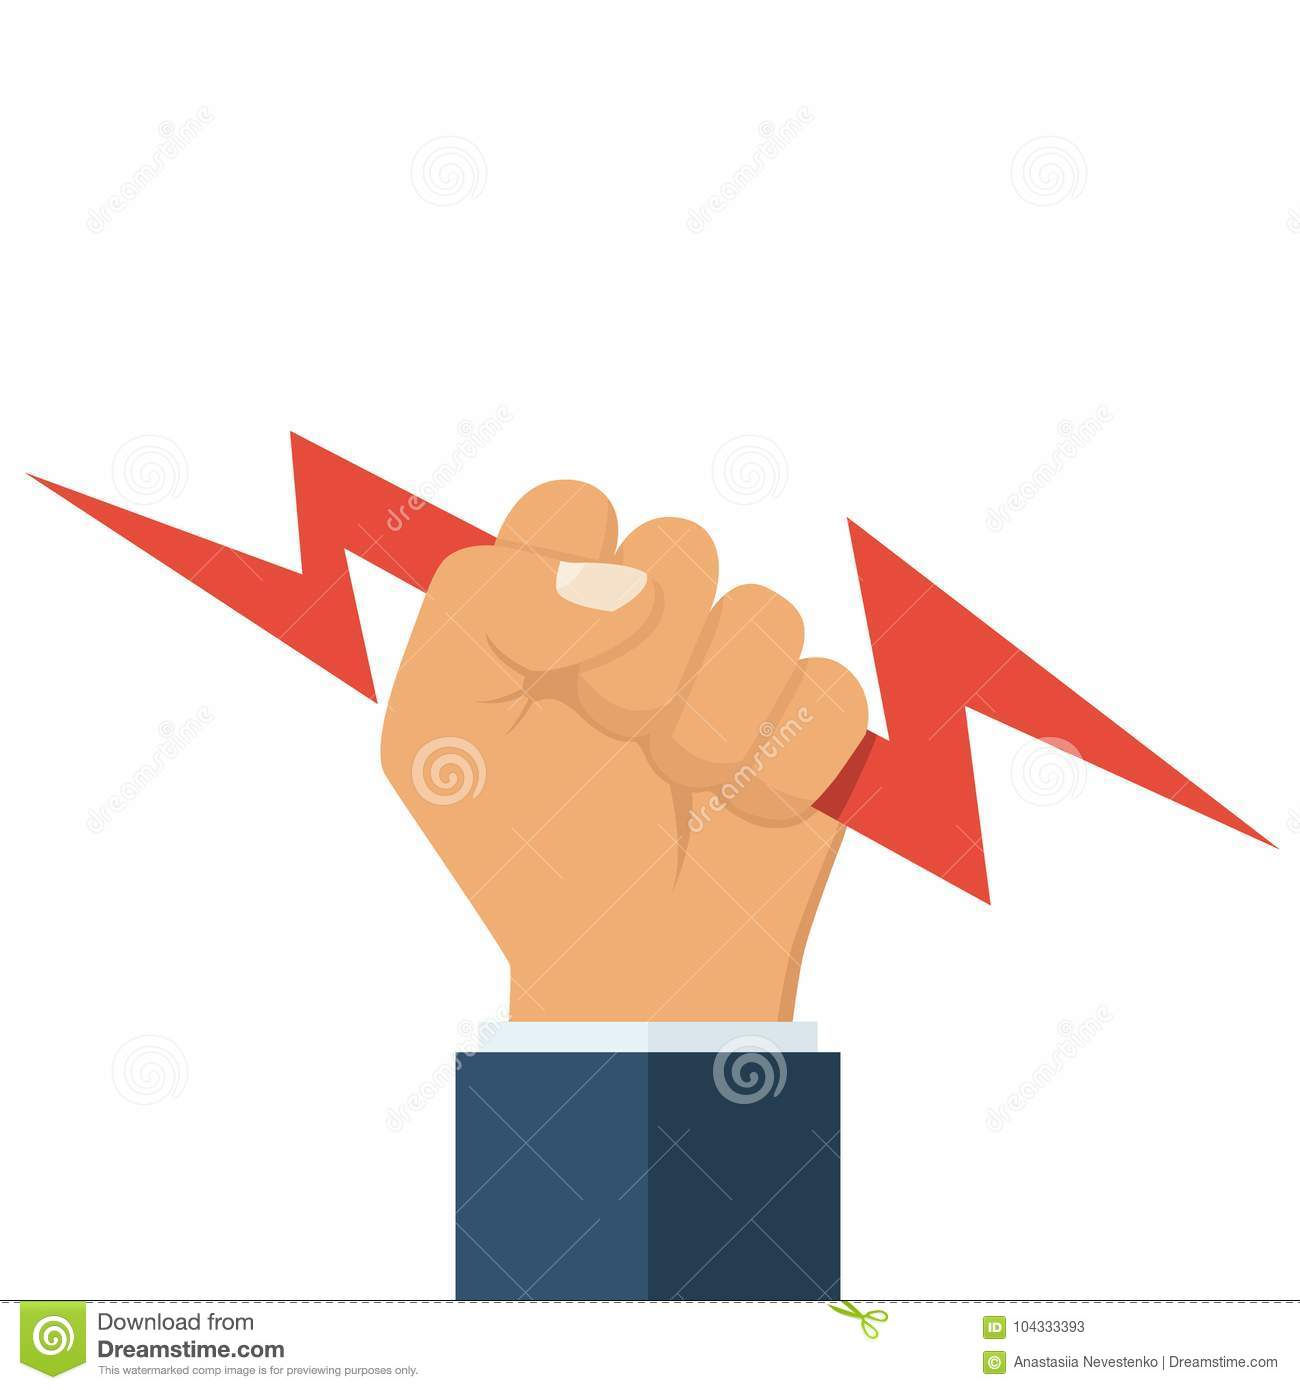 979a51eba4682 Lightning holding in hand stock vector. Illustration of electricity ...